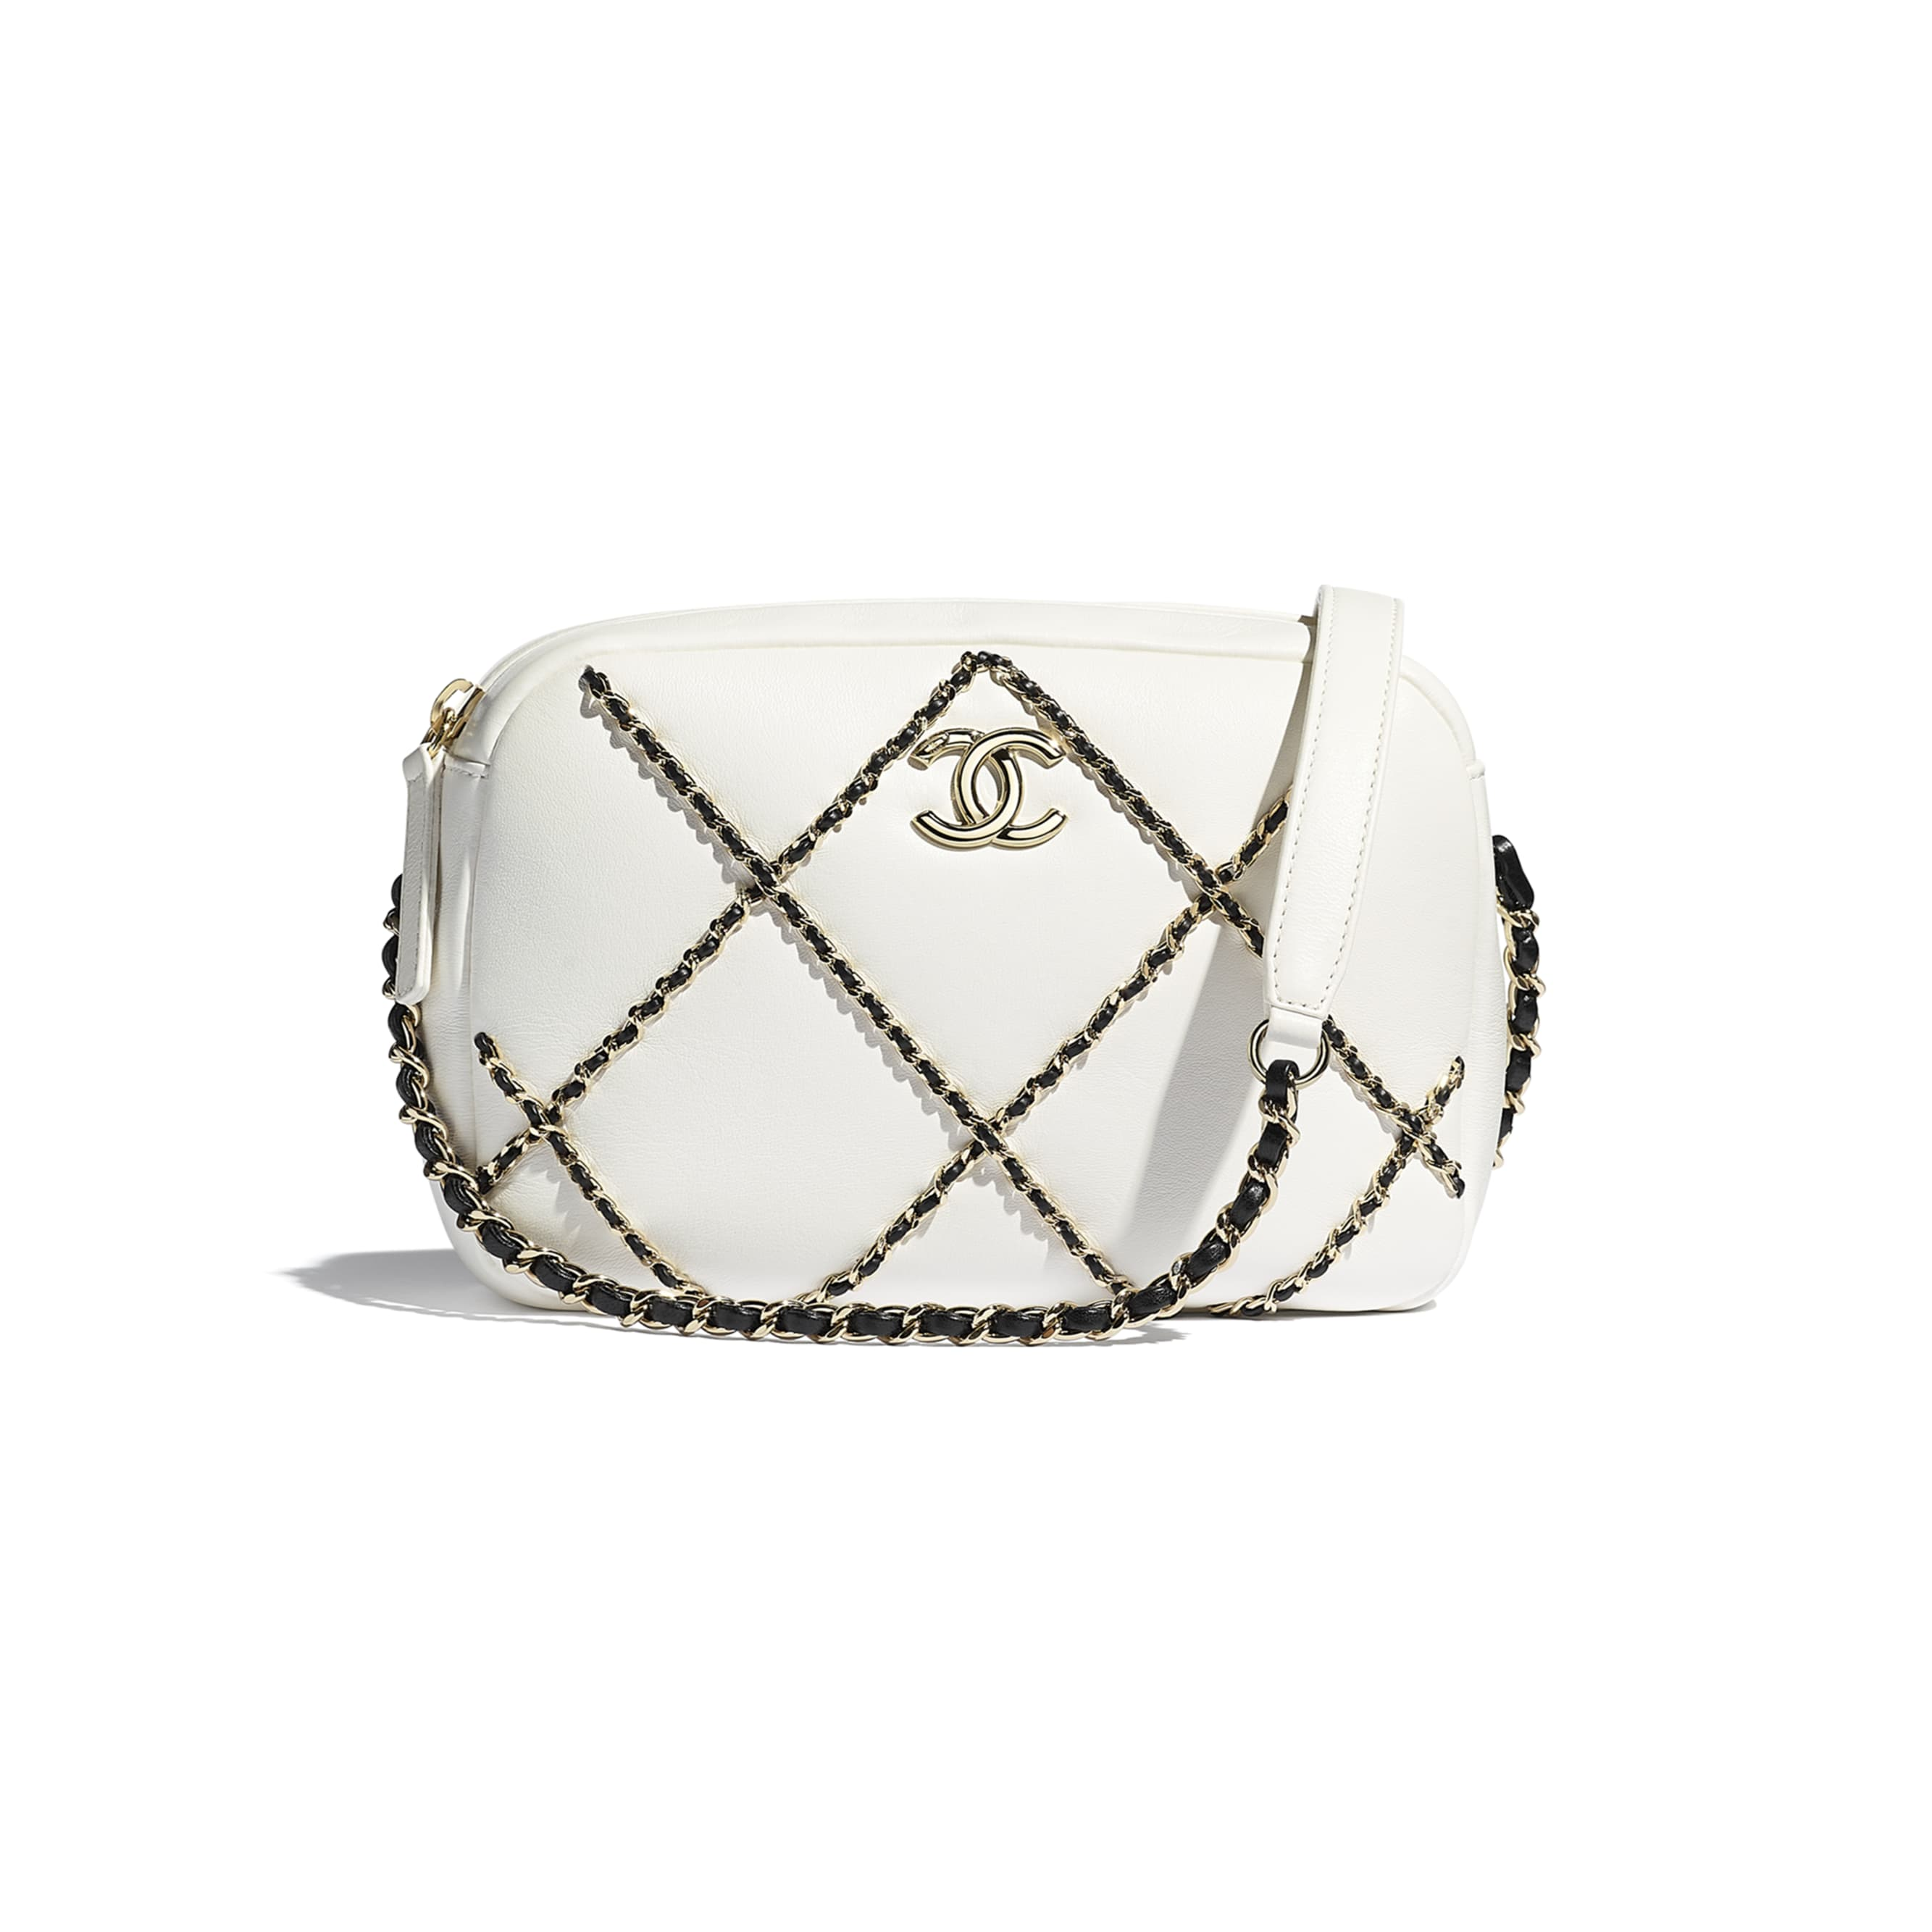 Camera Case - White & Black - Lambskin & Gold Metal  - CHANEL - Default view - see standard sized version